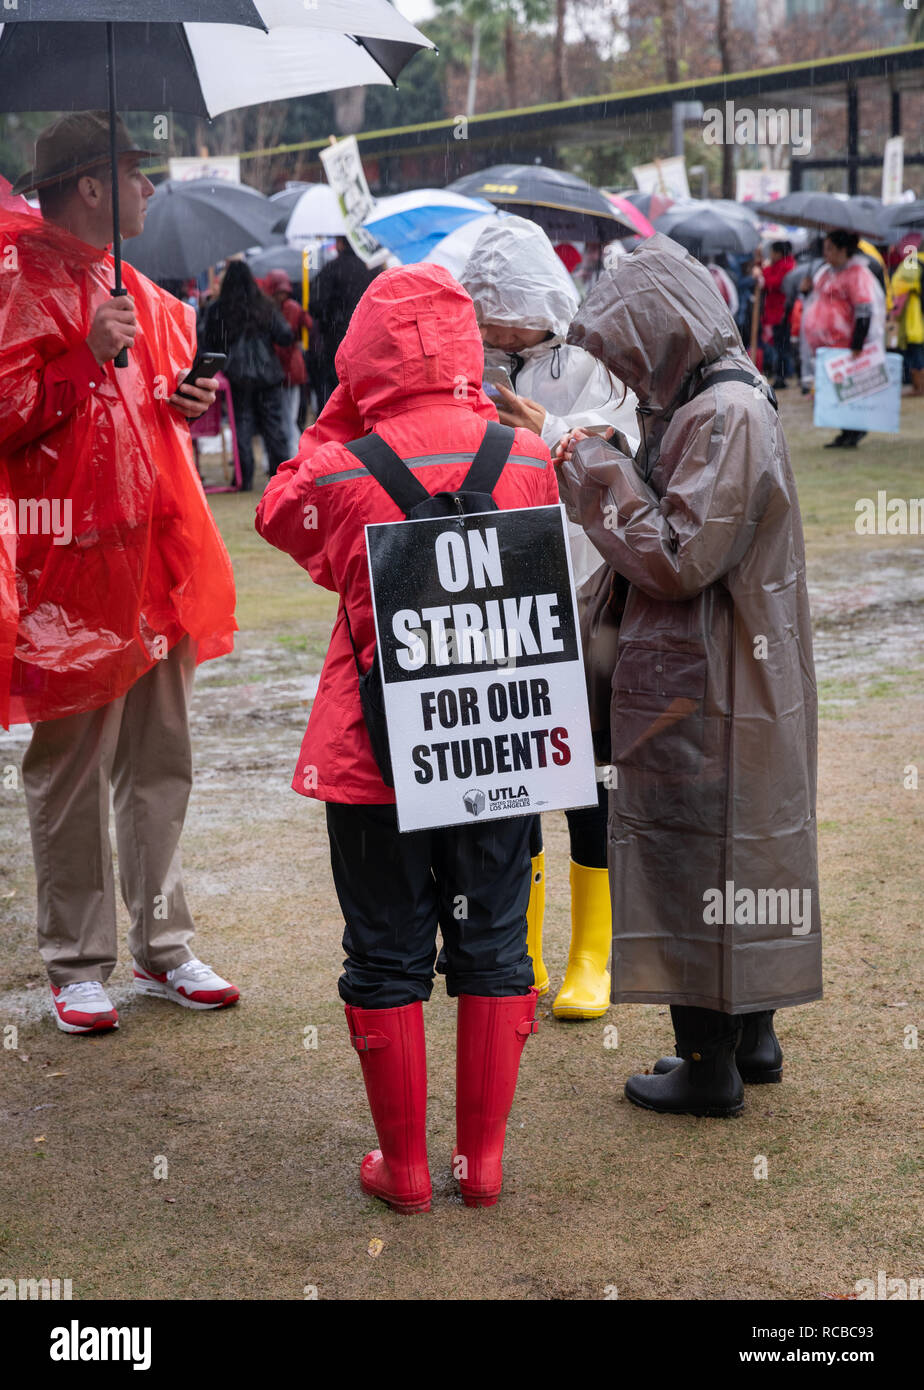 Los Angeles, USA. 14th Jan 2019. Teachers strike rally in Downtown Los Angeles, California, on January 14th, 2019. Credit: Jim Newberry/Alamy Live News - Stock Image